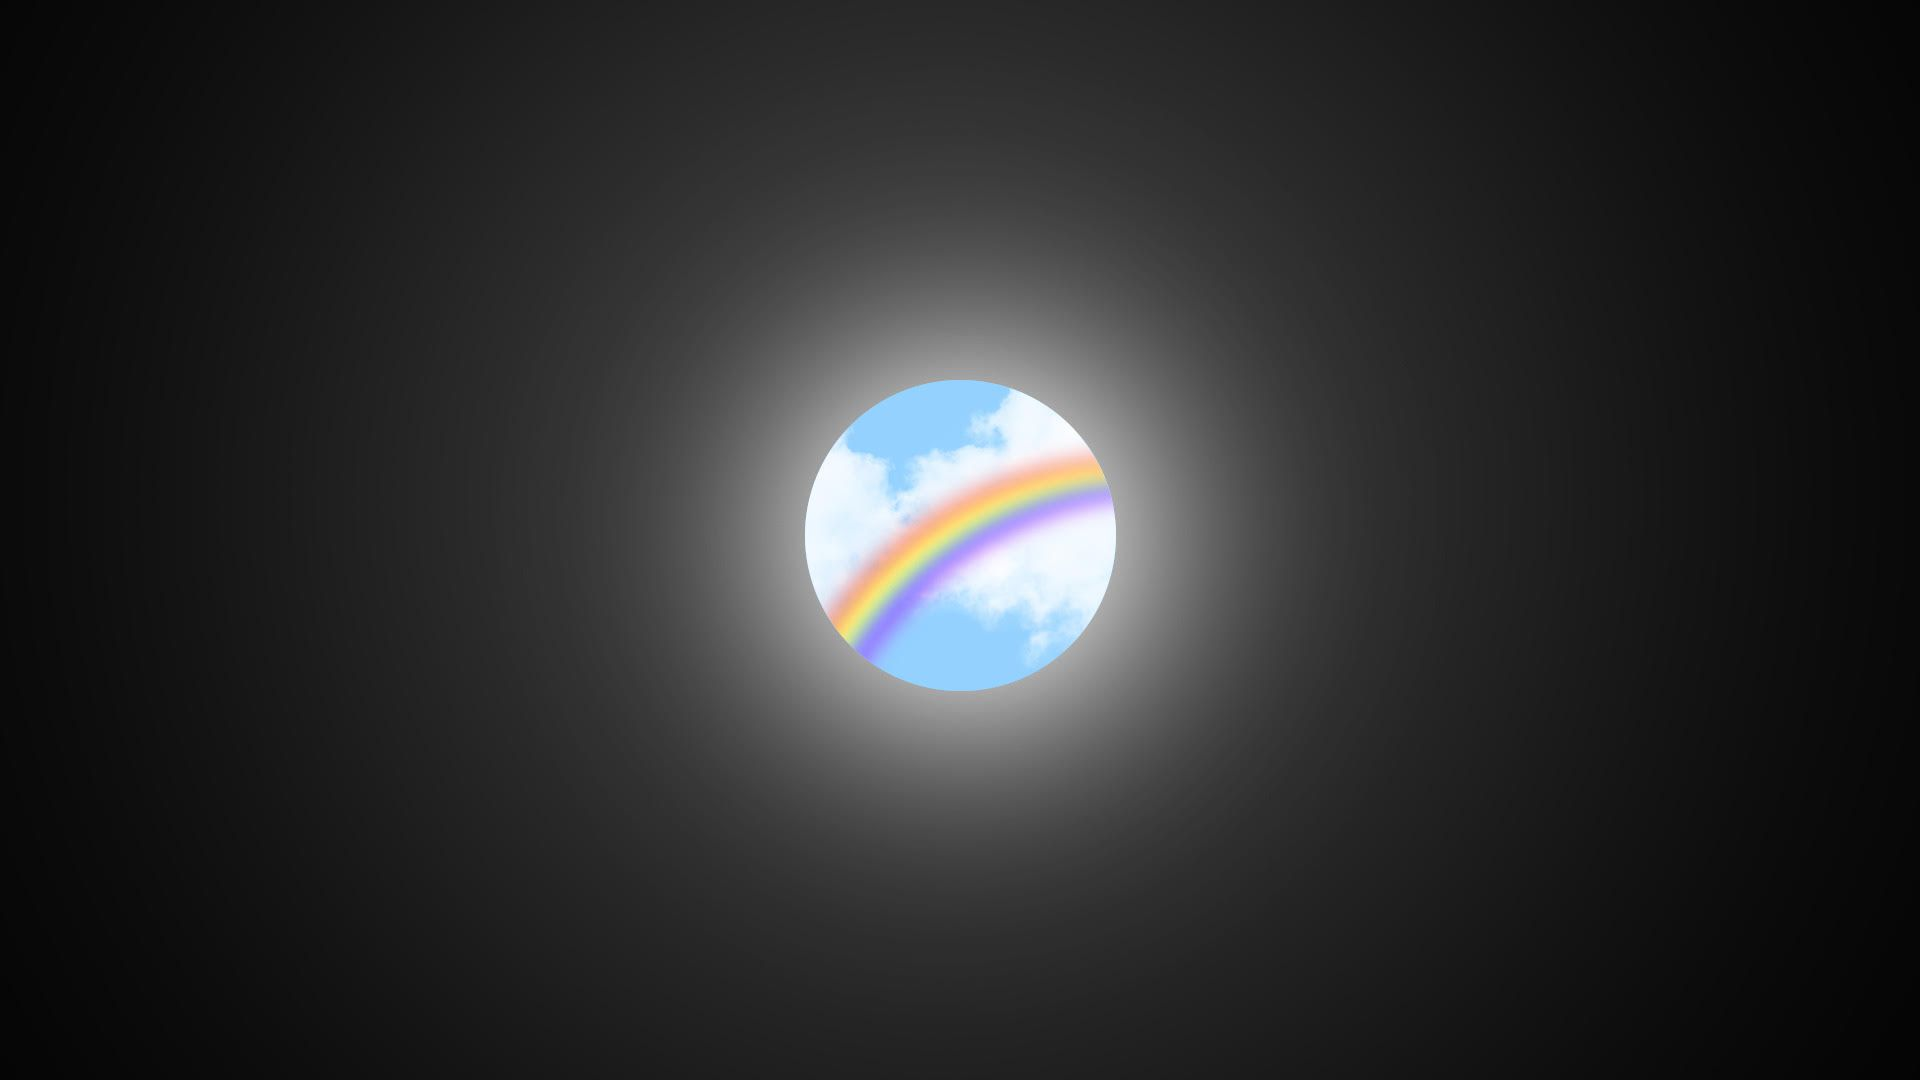 Illustration of small rainbow surrounded by darkness